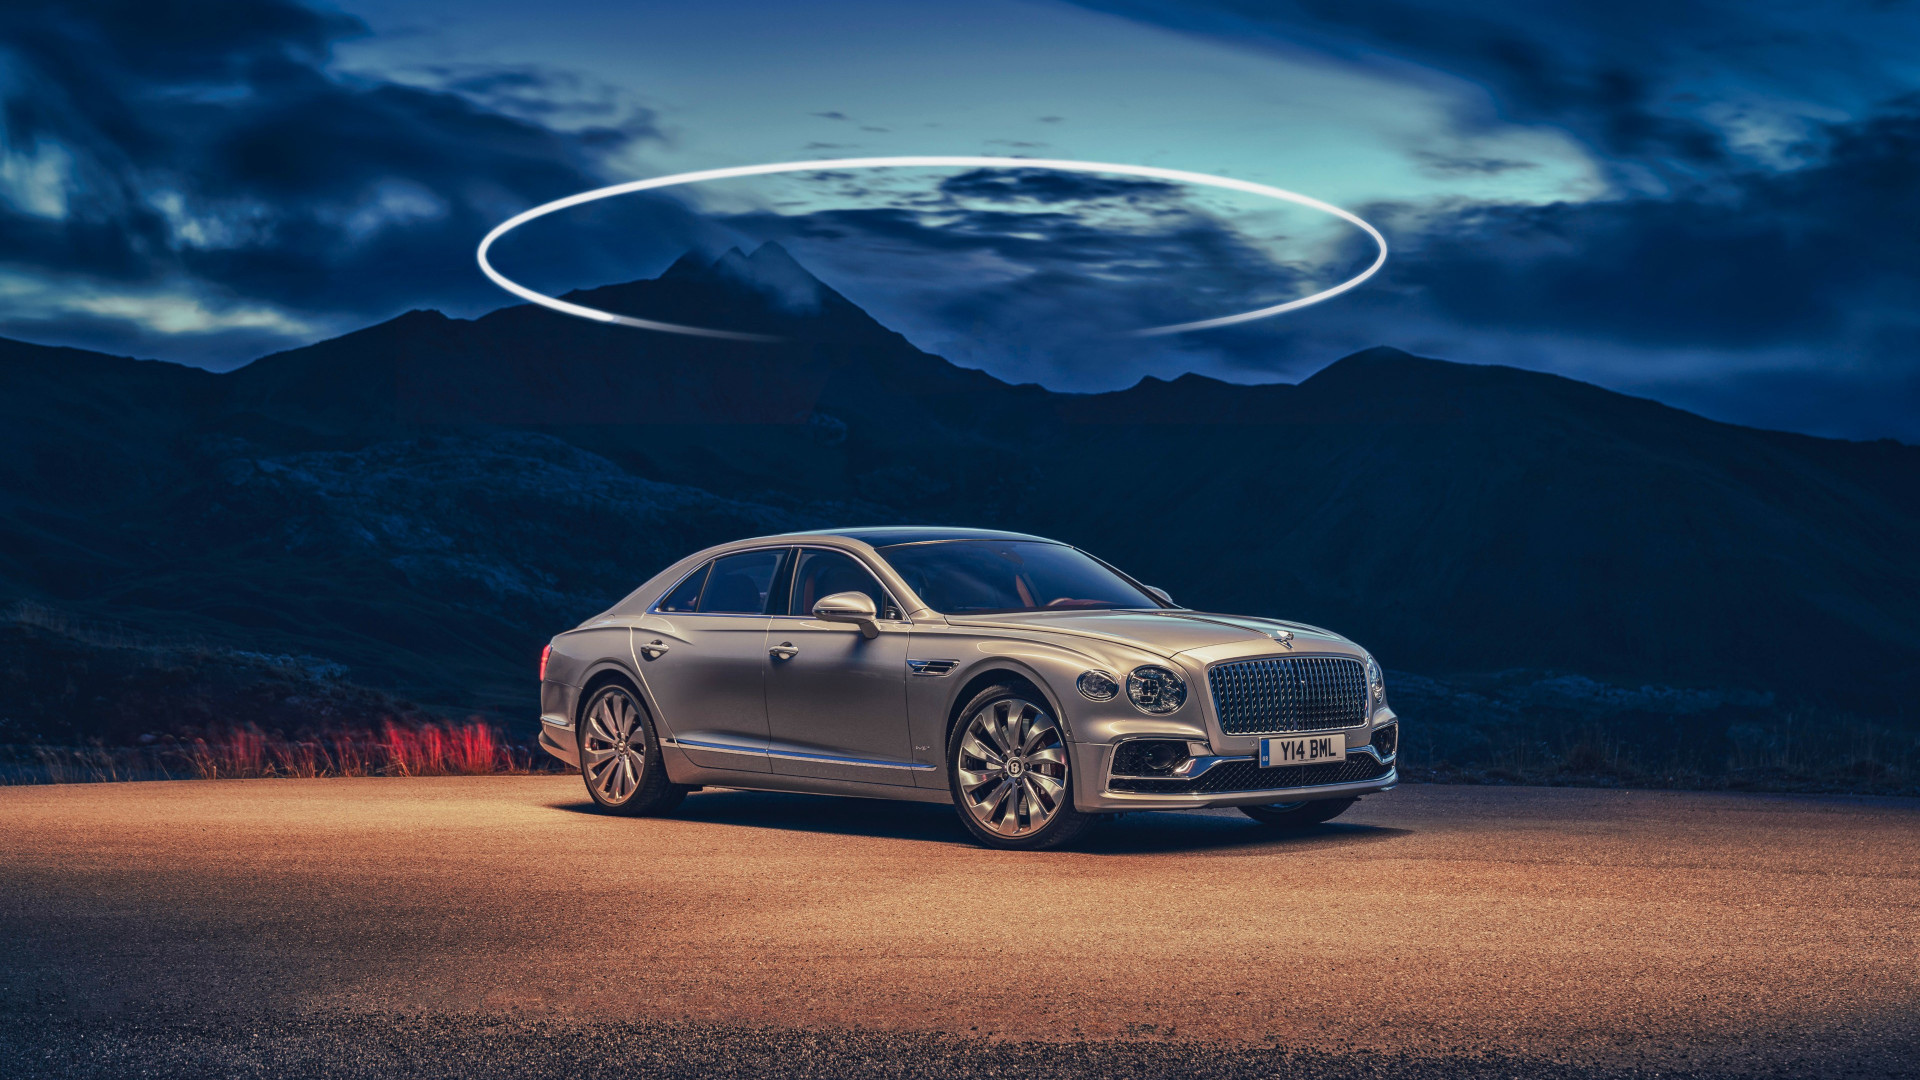 Bentley Flying Spur wallpaper 1920x1080